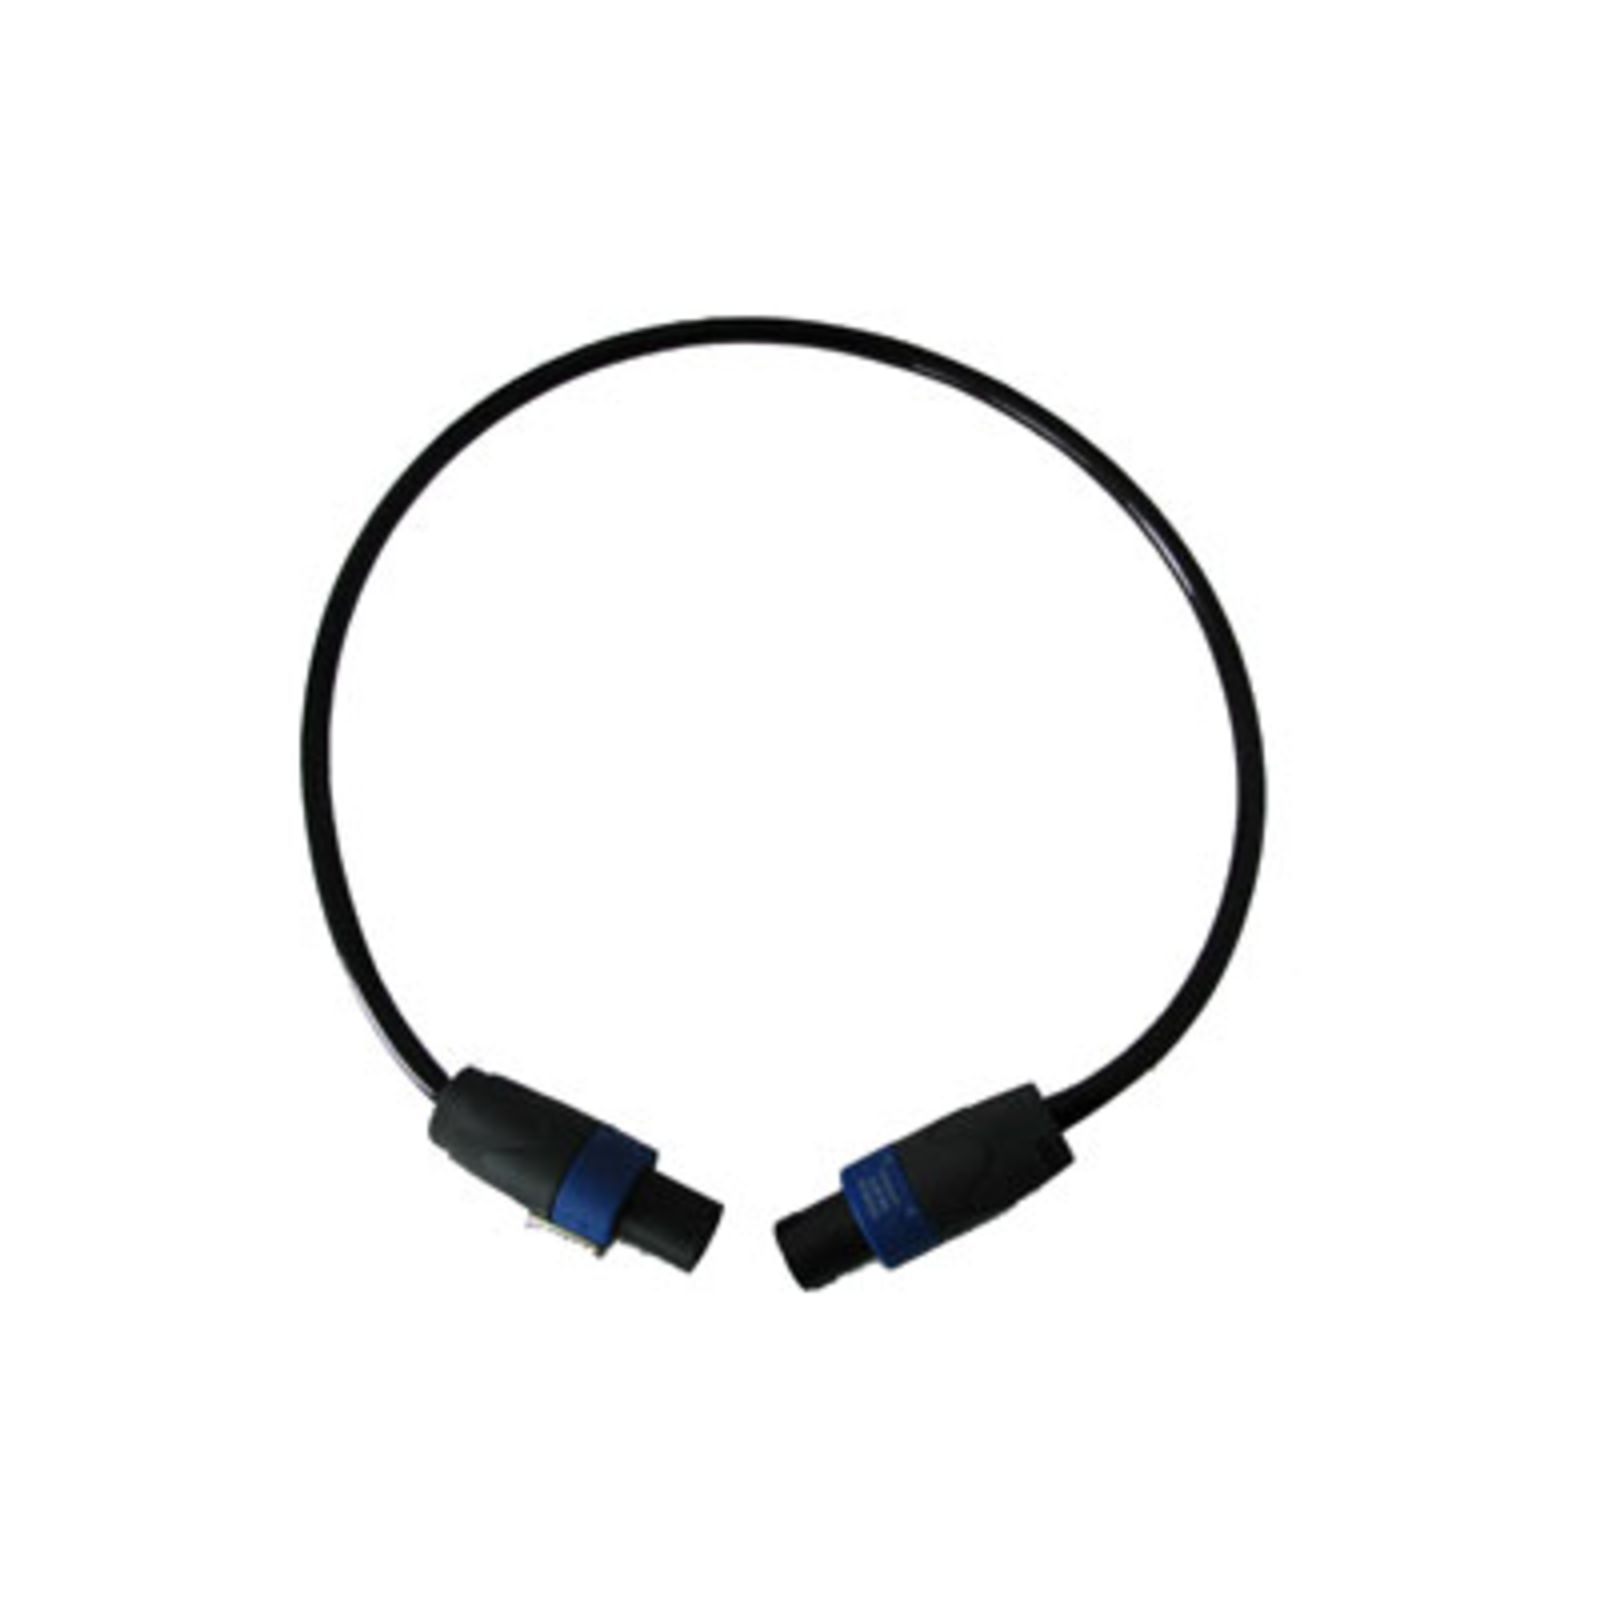 Glockenklang Speaker Cable 0.7m Speakon Product Image